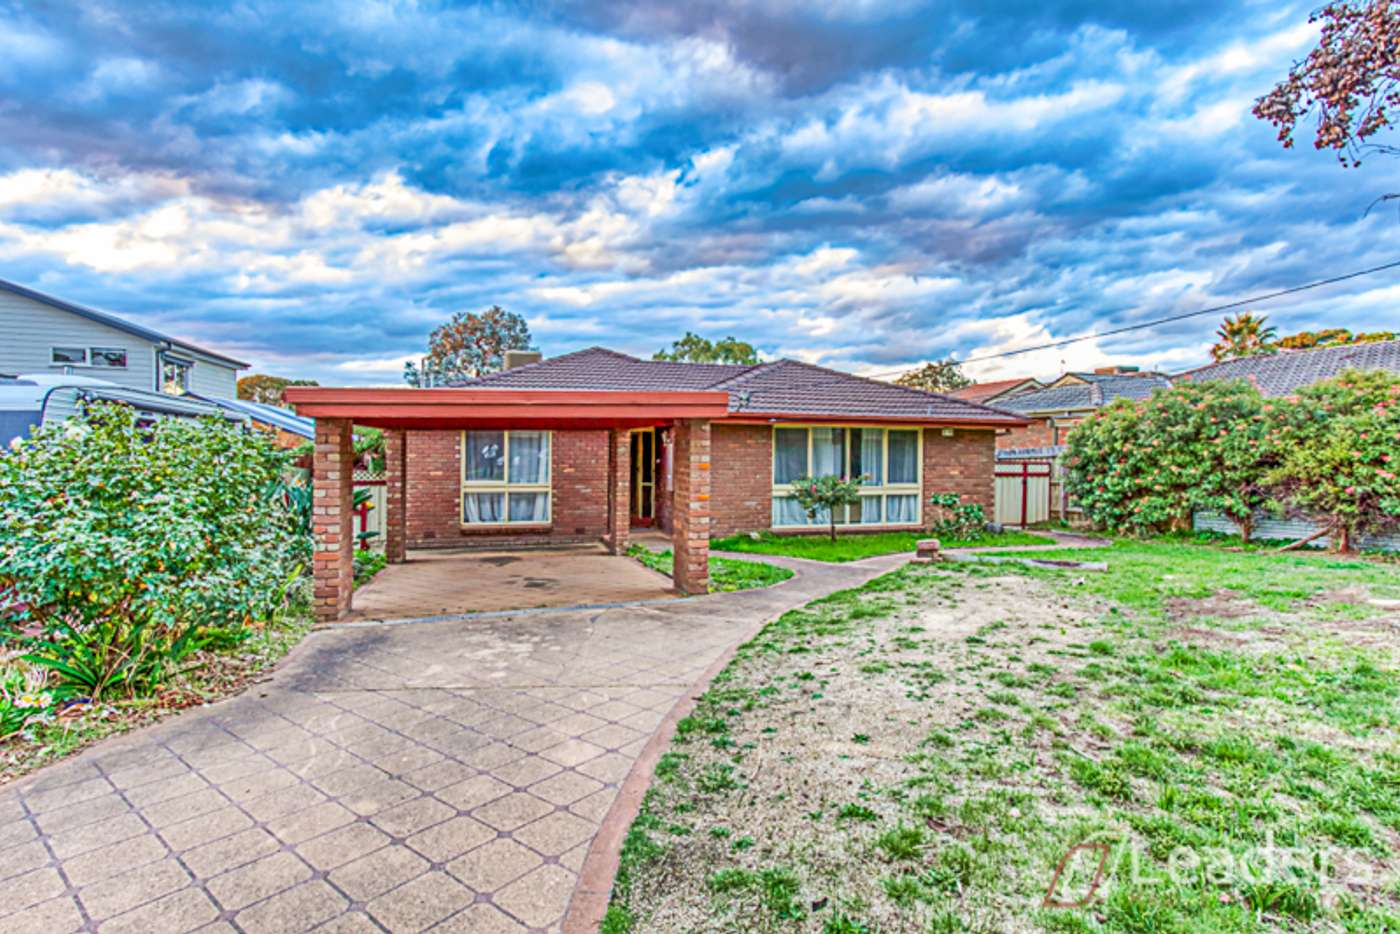 Main view of Homely house listing, 9 Richborough Grove, Ferntree Gully VIC 3156